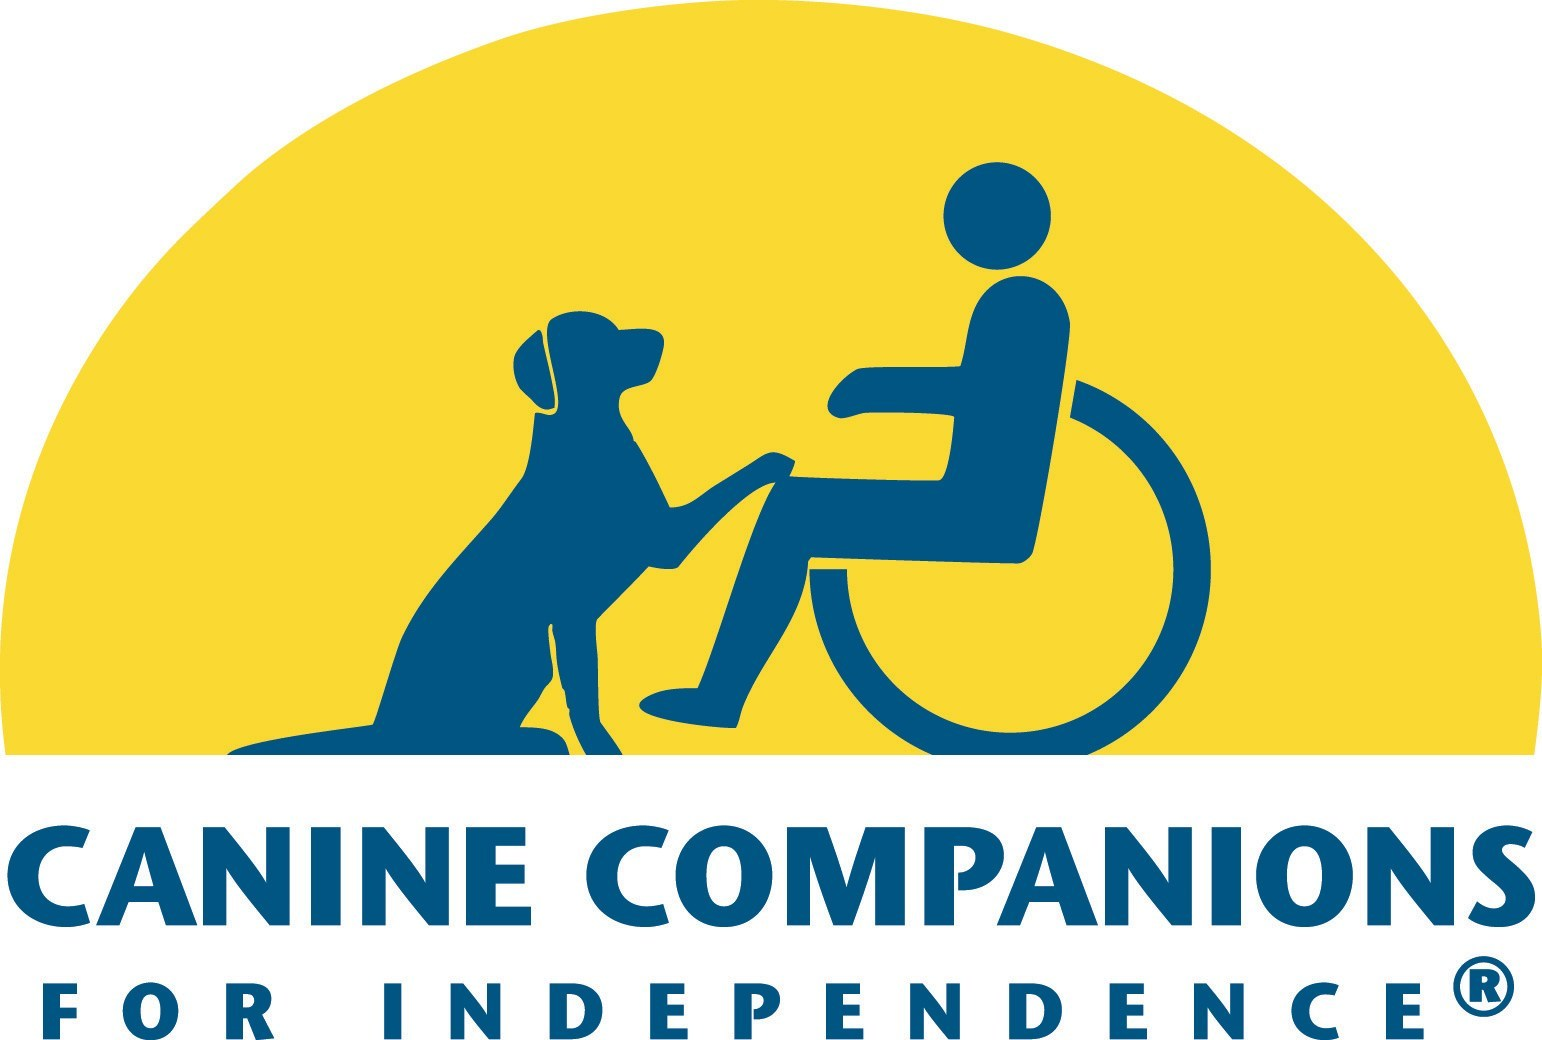 Canine Companions for Independence (PRNewsfoto/Canine Companions for Independe)